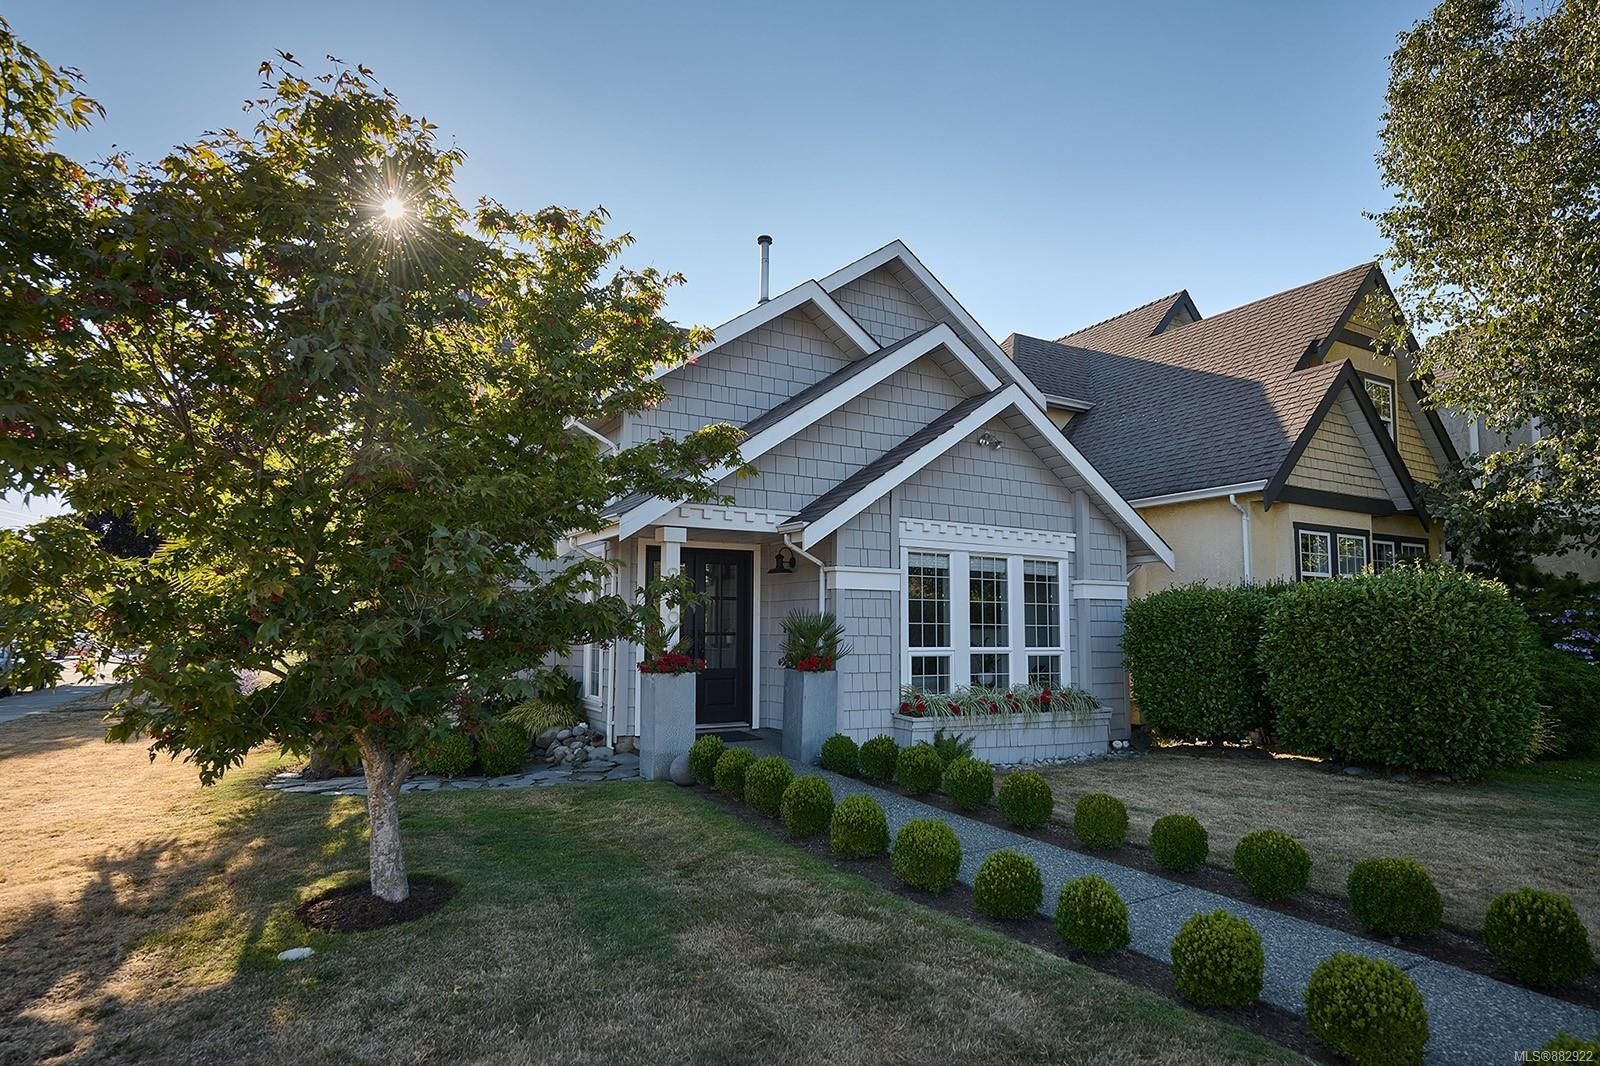 Main Photo: 9860 Seventh St in : Si Sidney North-East House for sale (Sidney)  : MLS®# 882922